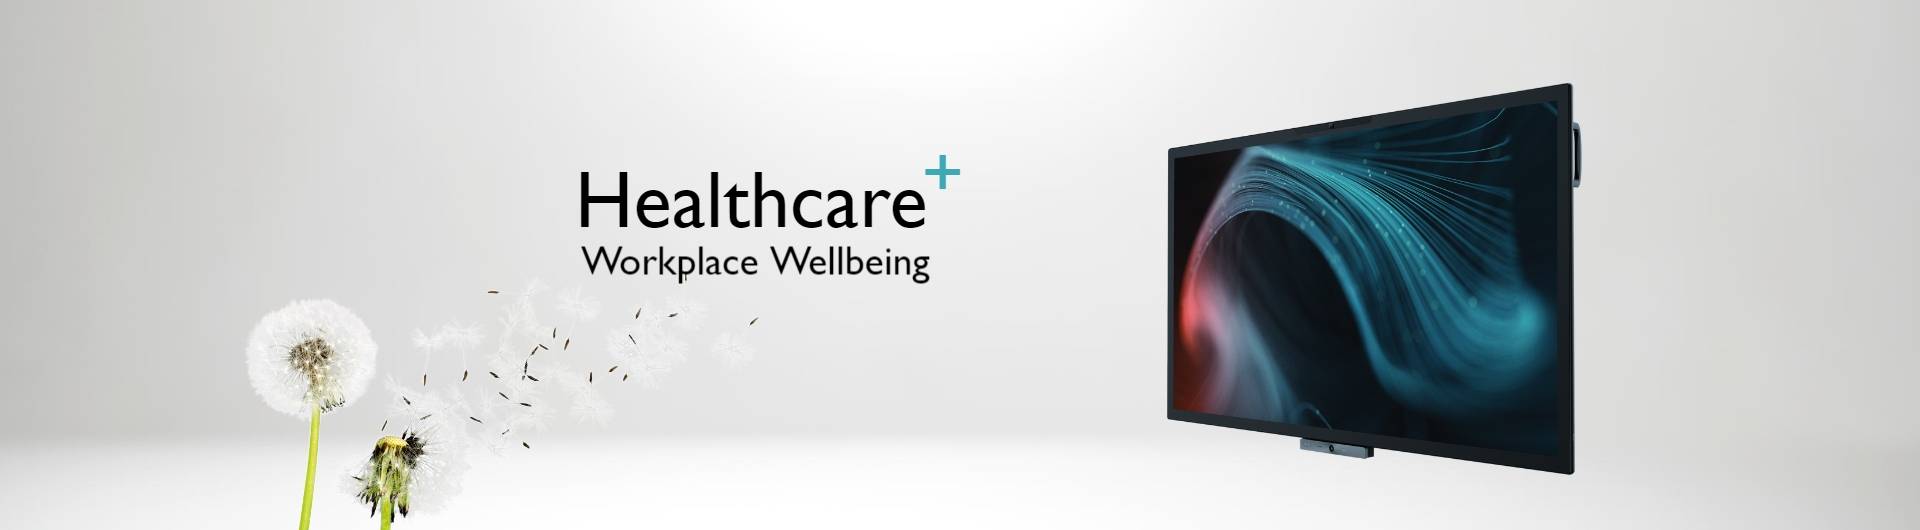 Healthcare+ workplace wellbeing